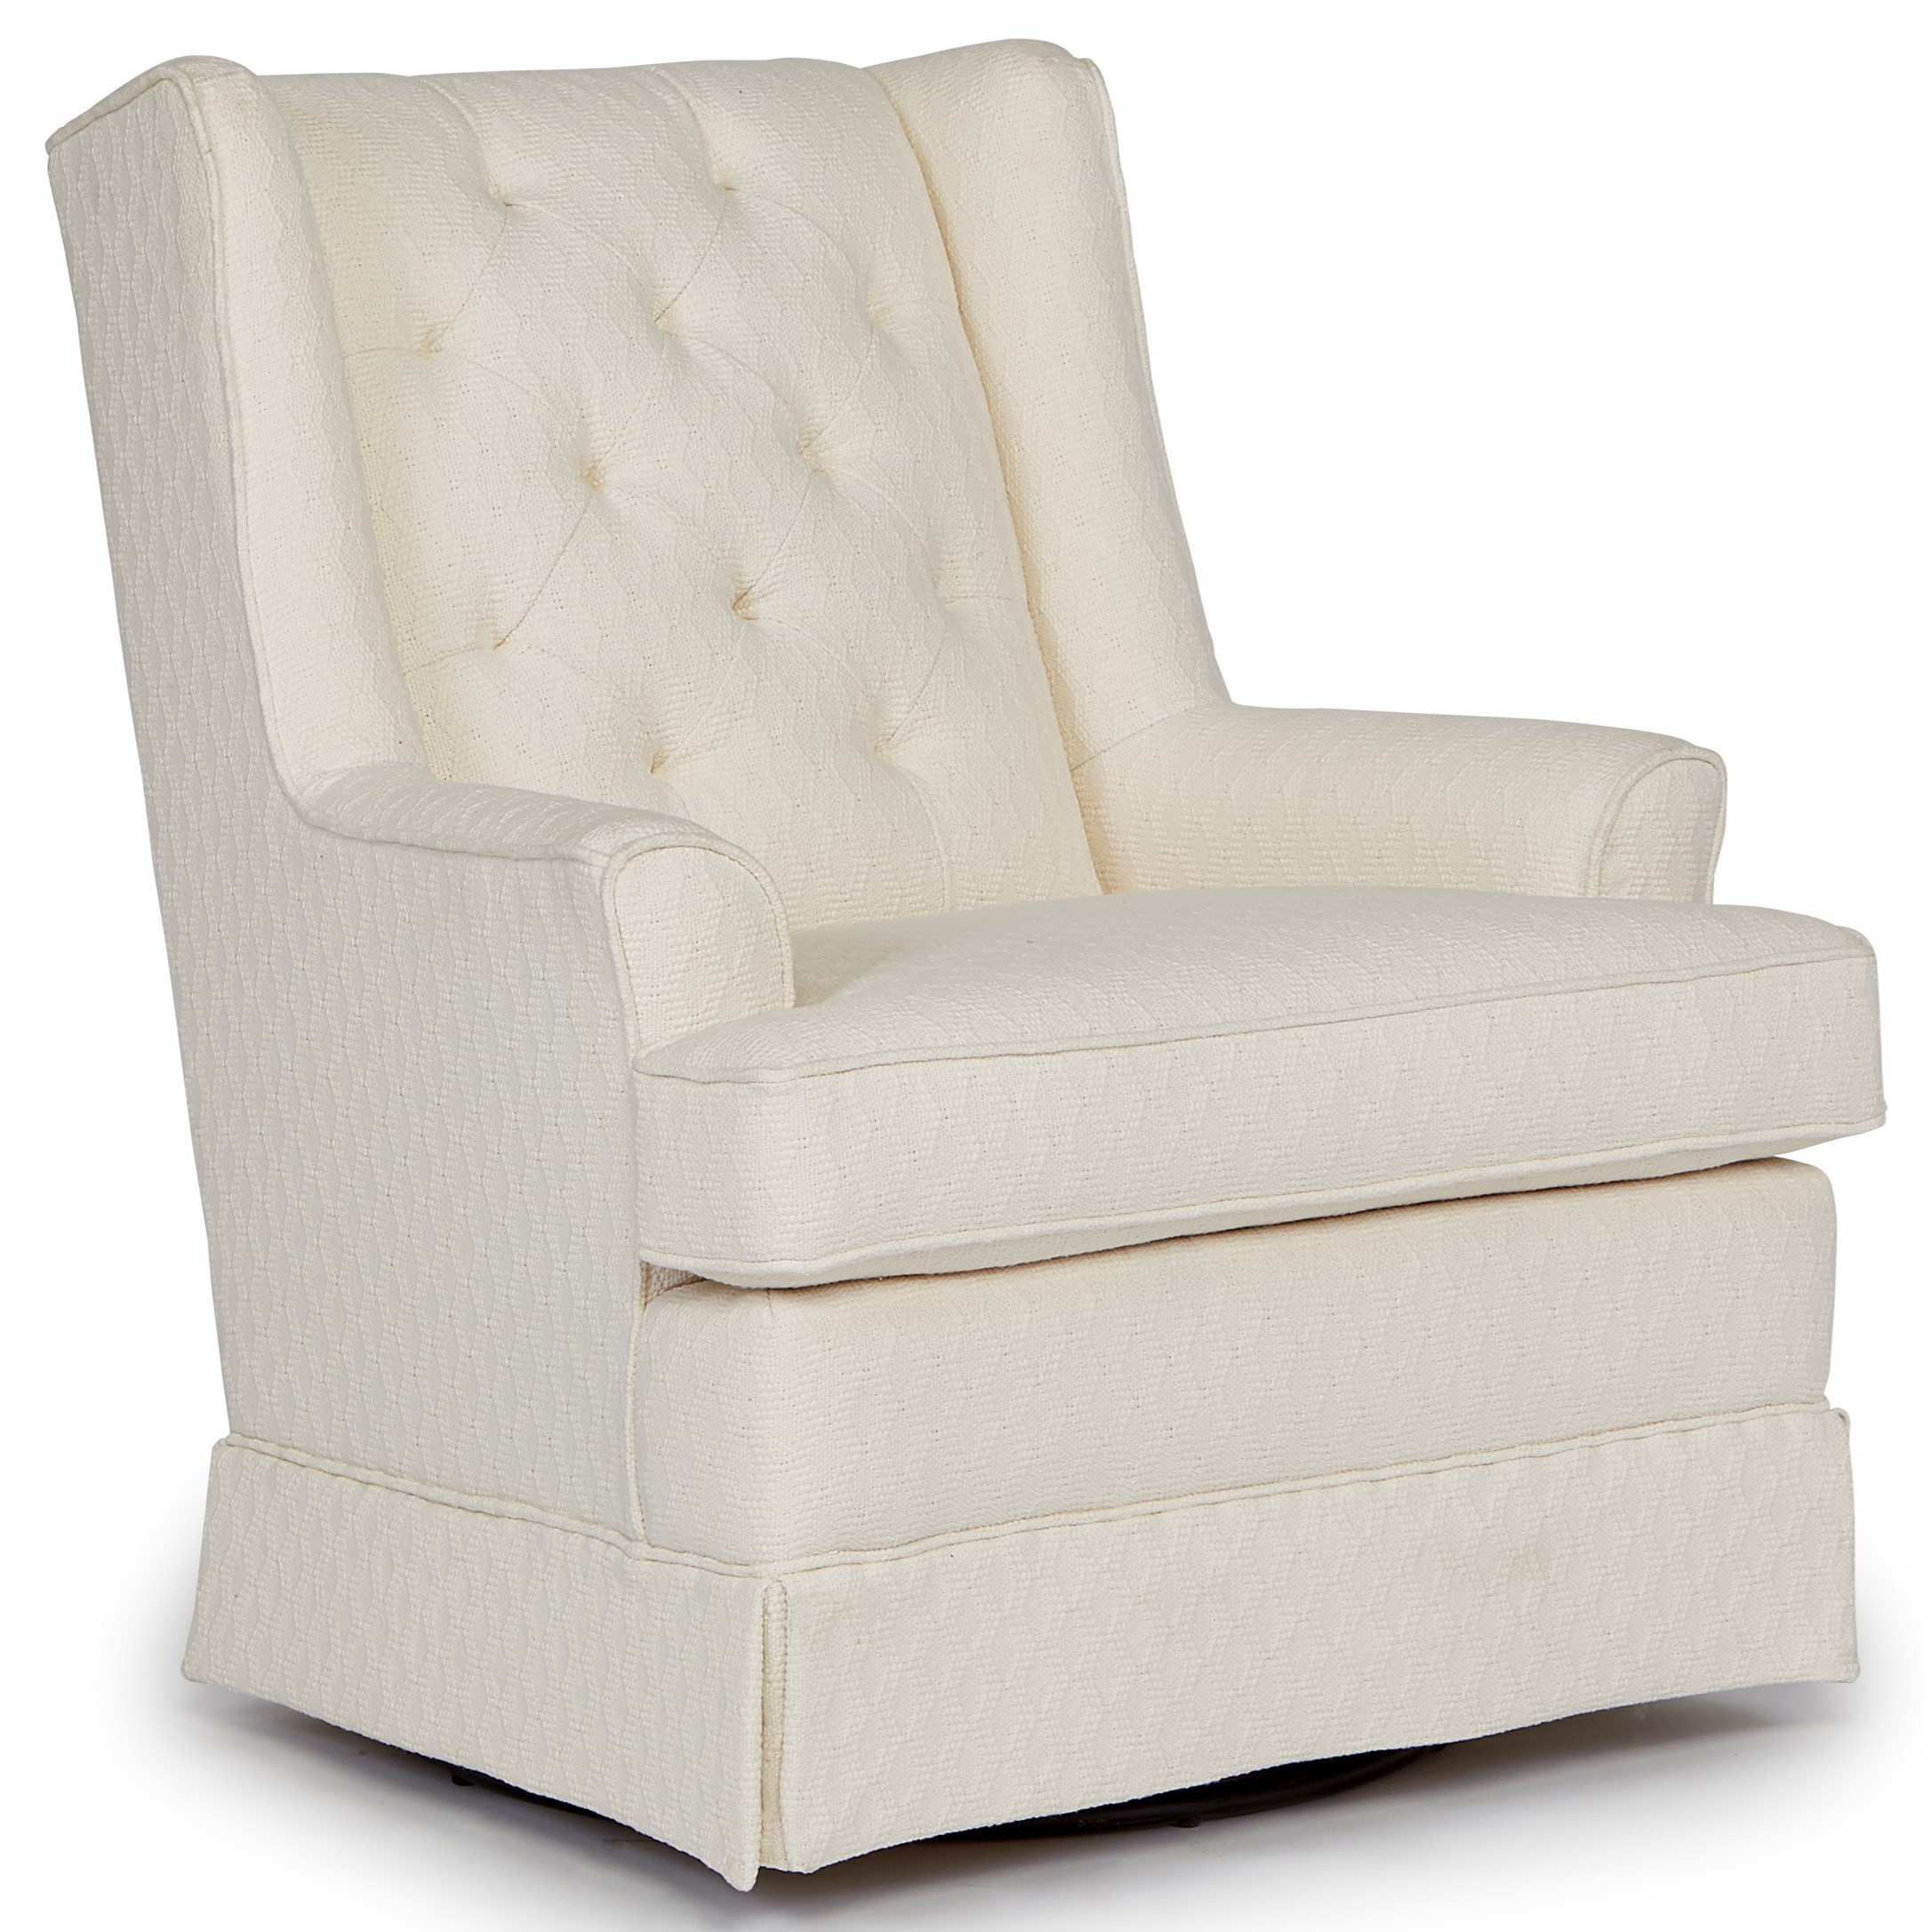 Swivel Glide Chairs Swivel Glider